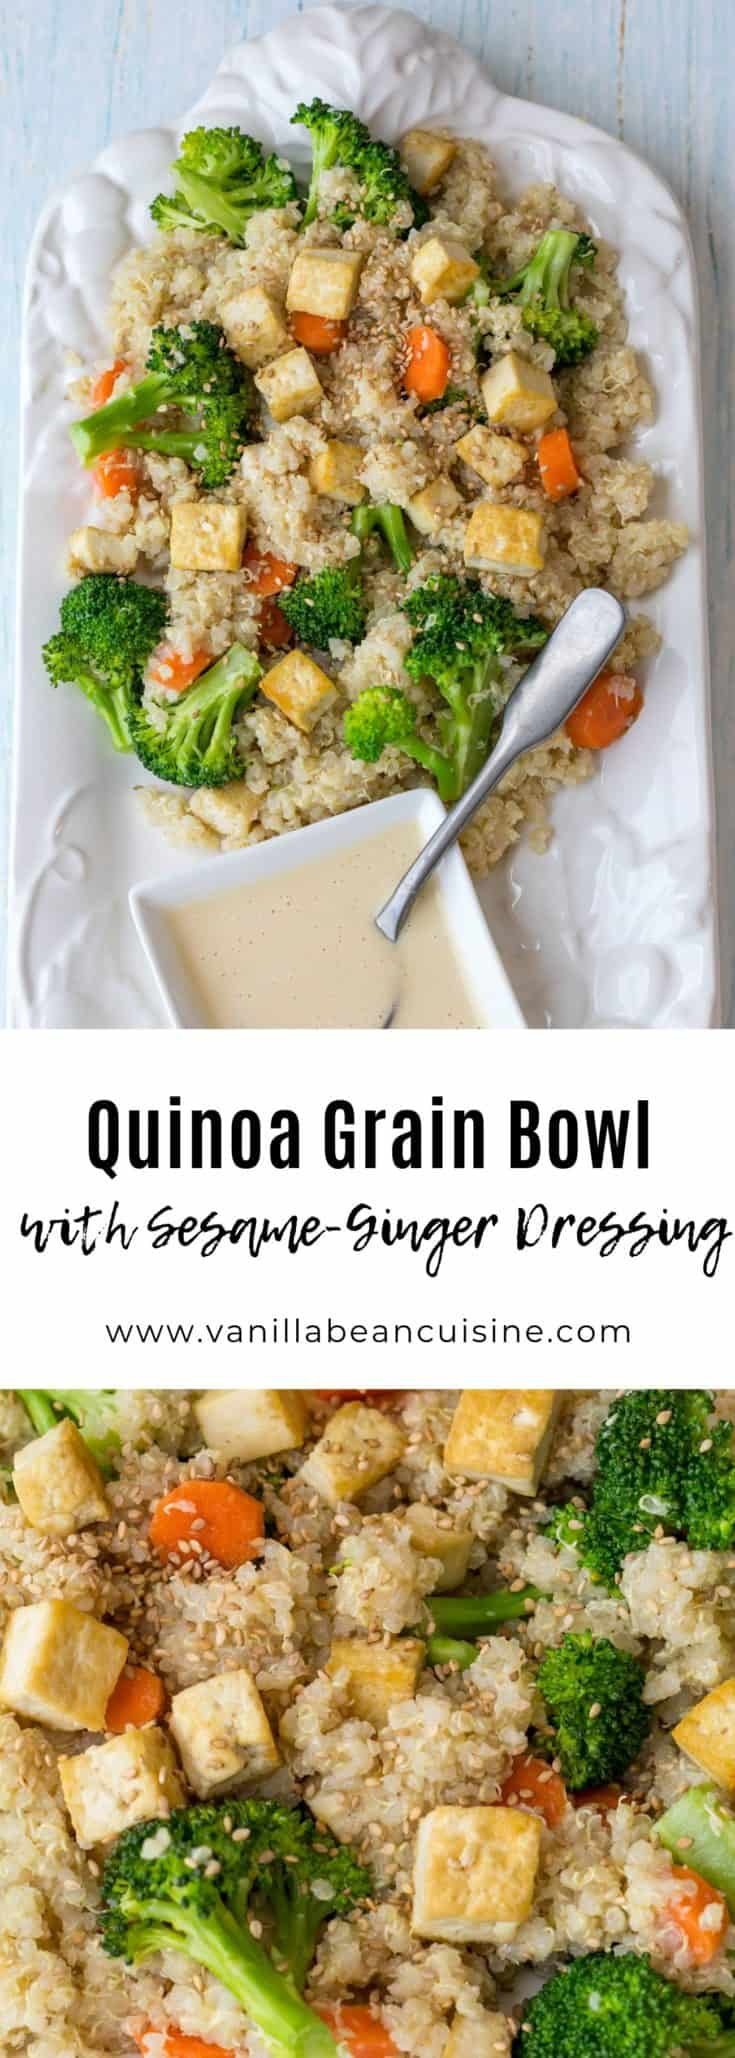 This delicious grain bowl recipe includes quinoa topped with sauteed tofu, broccoli, and carrots drizzled with sesame-ginger dressing. Vegetarian, vegan, gluten-free, and dairy-free. Will make everyone happy! #vegetarianrecipes #grainbowl #quinoasalad #glutenfreerecipes